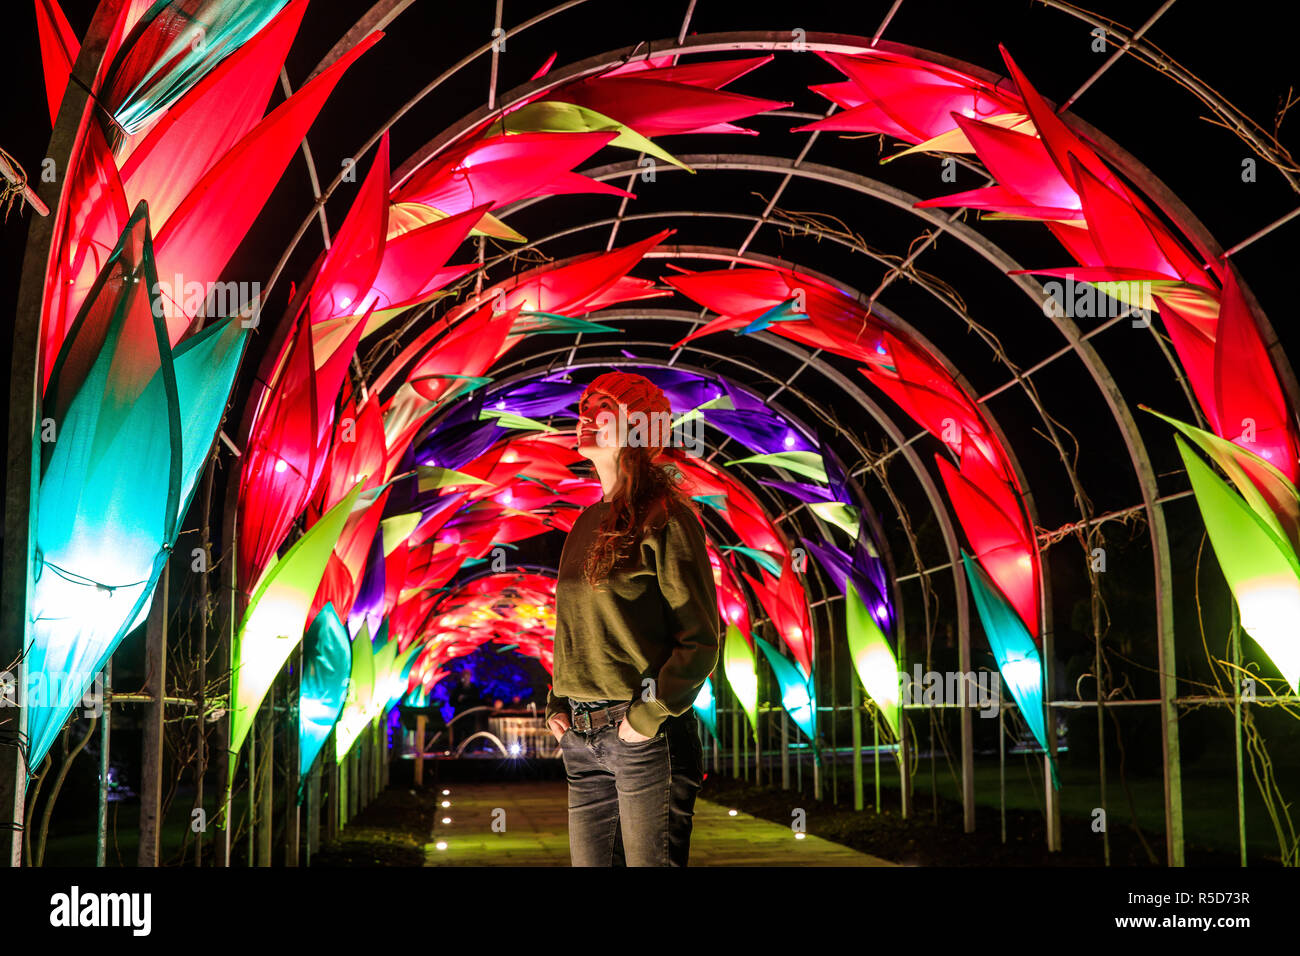 Wisley, Surrey, UK, 30 November 2018.  30th November 2018. Naomi Trenier, 31 from Surrey pictured admiring the display over the the new Wisteria Walkway.  The daily light installations returns to Wisley from 1 December until Wednesday 2 January 2019 from 4pm - 8pm.  Back for its fourth year, Christmas Glow guides visitors around a new route for 2018, taking in locations including the Rock Garden, the Seven Acres lake and the Jellicoe Canal. Credit: Oliver Dixon/Alamy Live News - Stock Image